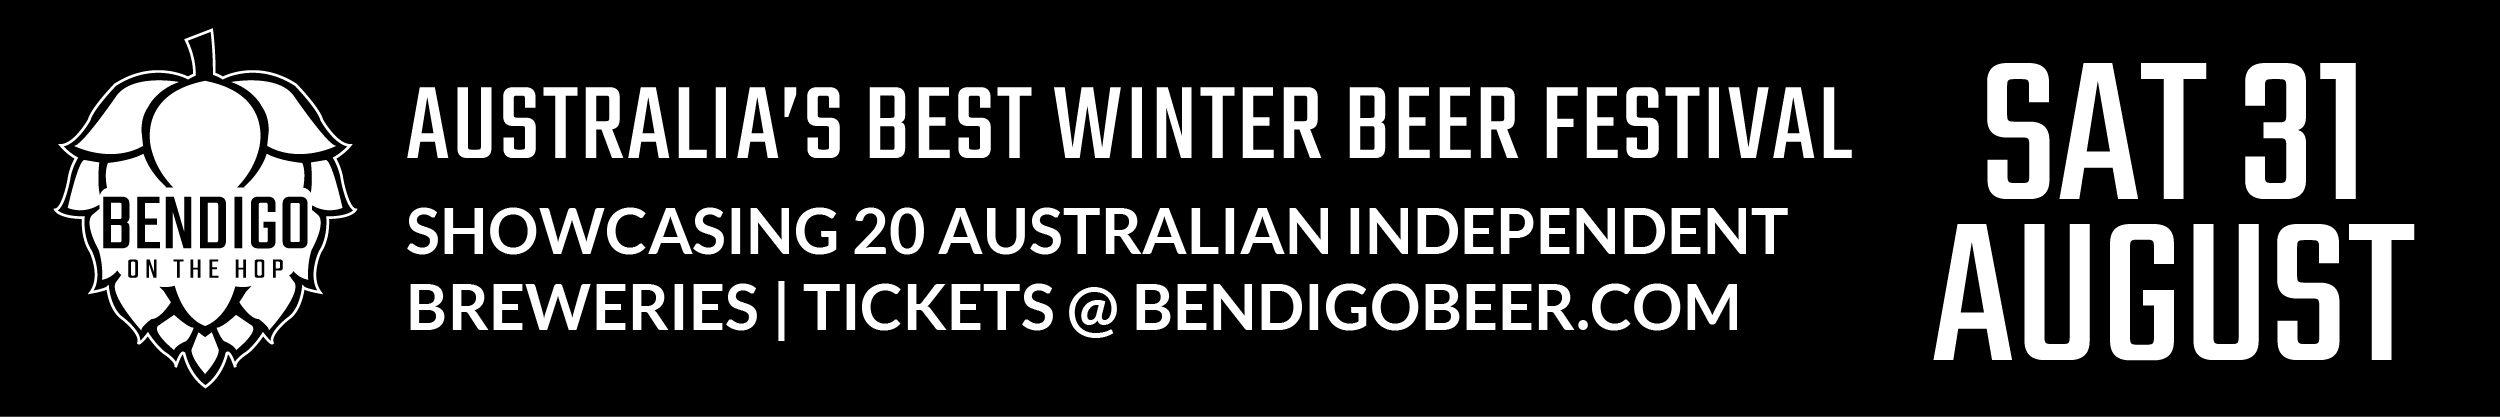 Bendigo On The Hop 2019